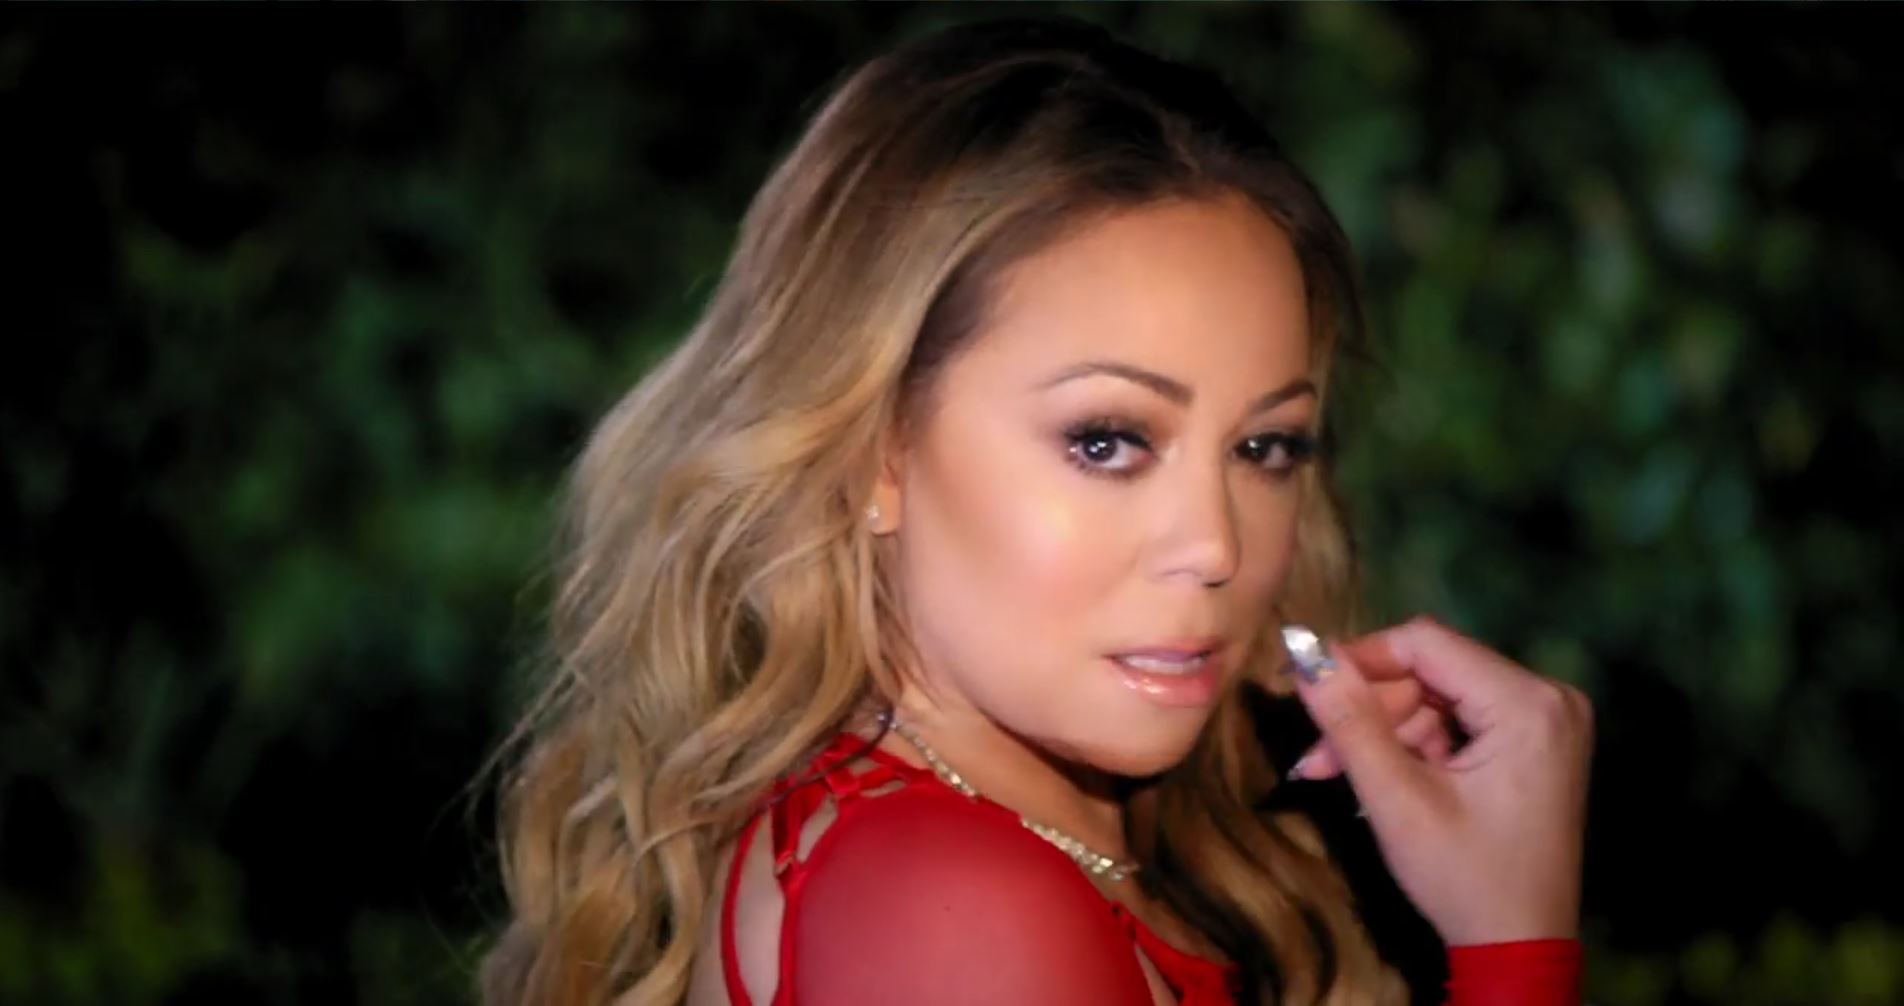 Video Mariah Carey naked (57 photos), Tits, Cleavage, Boobs, braless 2020